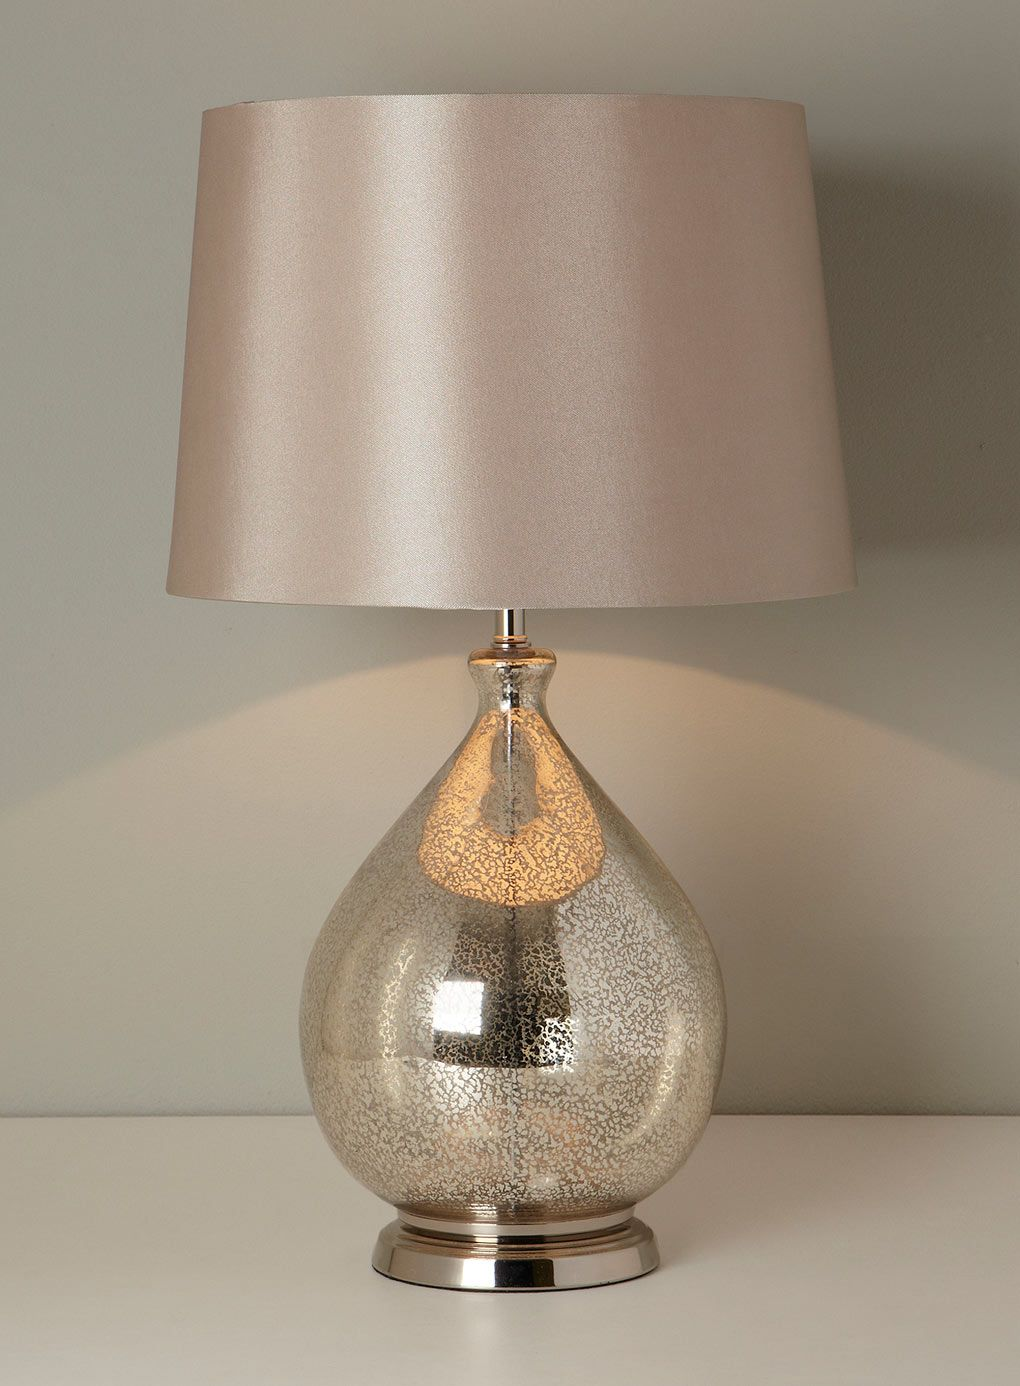 Gold Chloe Table Lamp Bhs Bedroom Lamps Table Lamp Design Decor